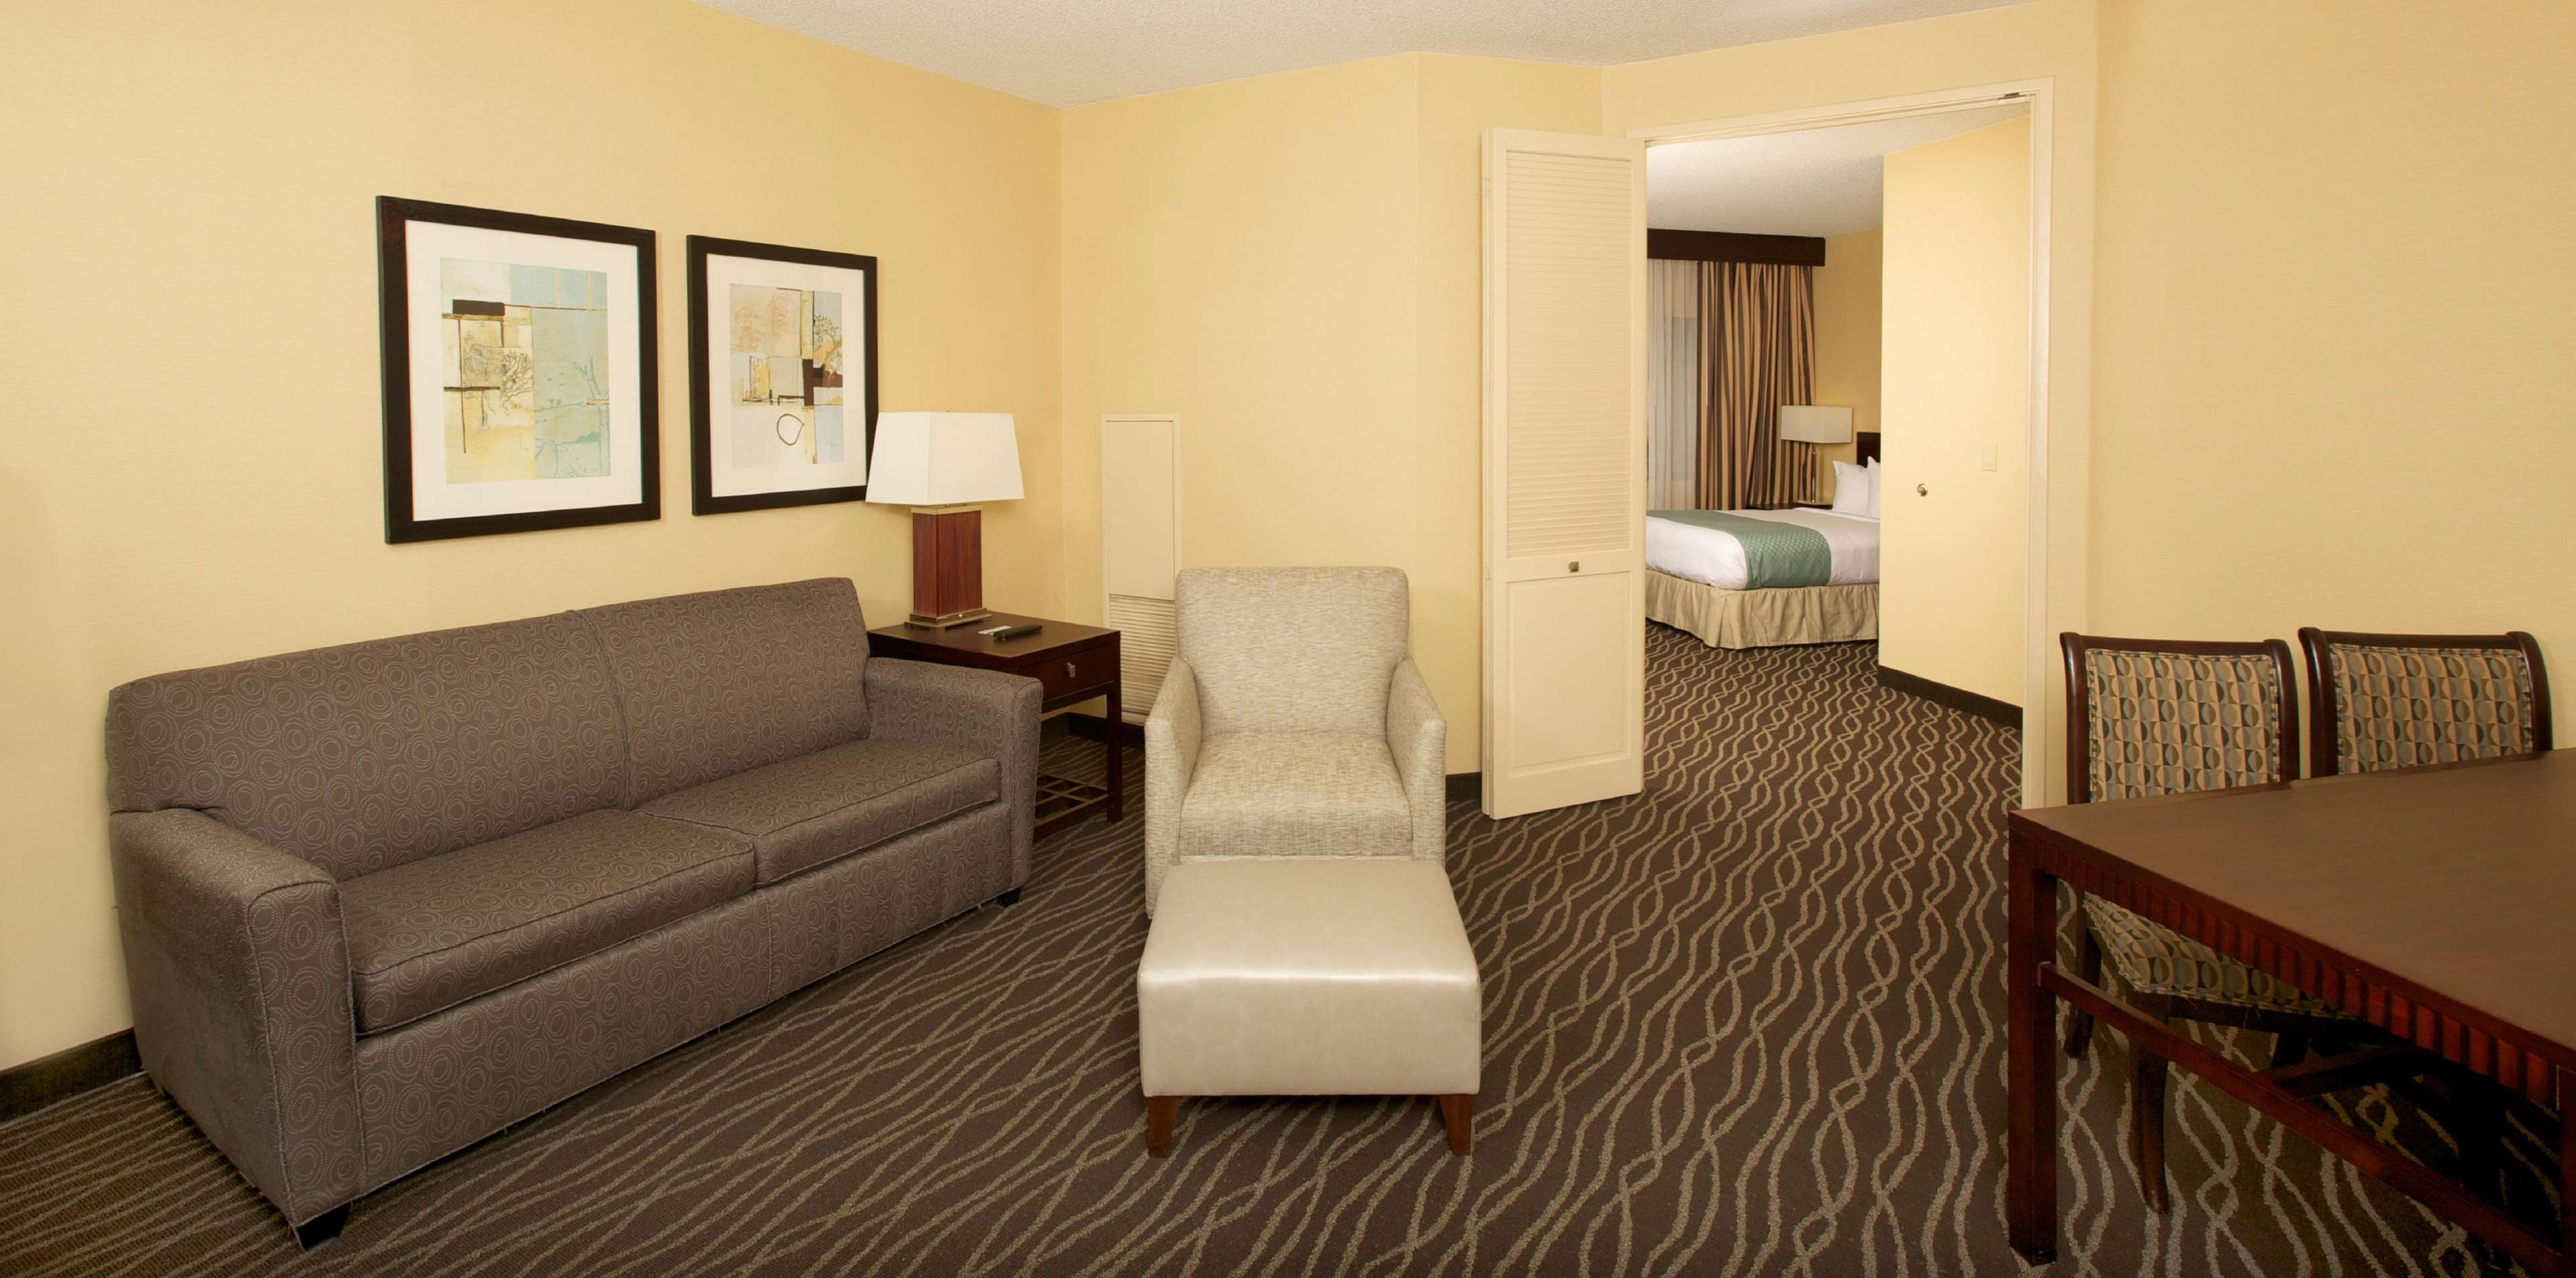 DoubleTree Suites by Hilton Hotel Raleigh - Durham image 25